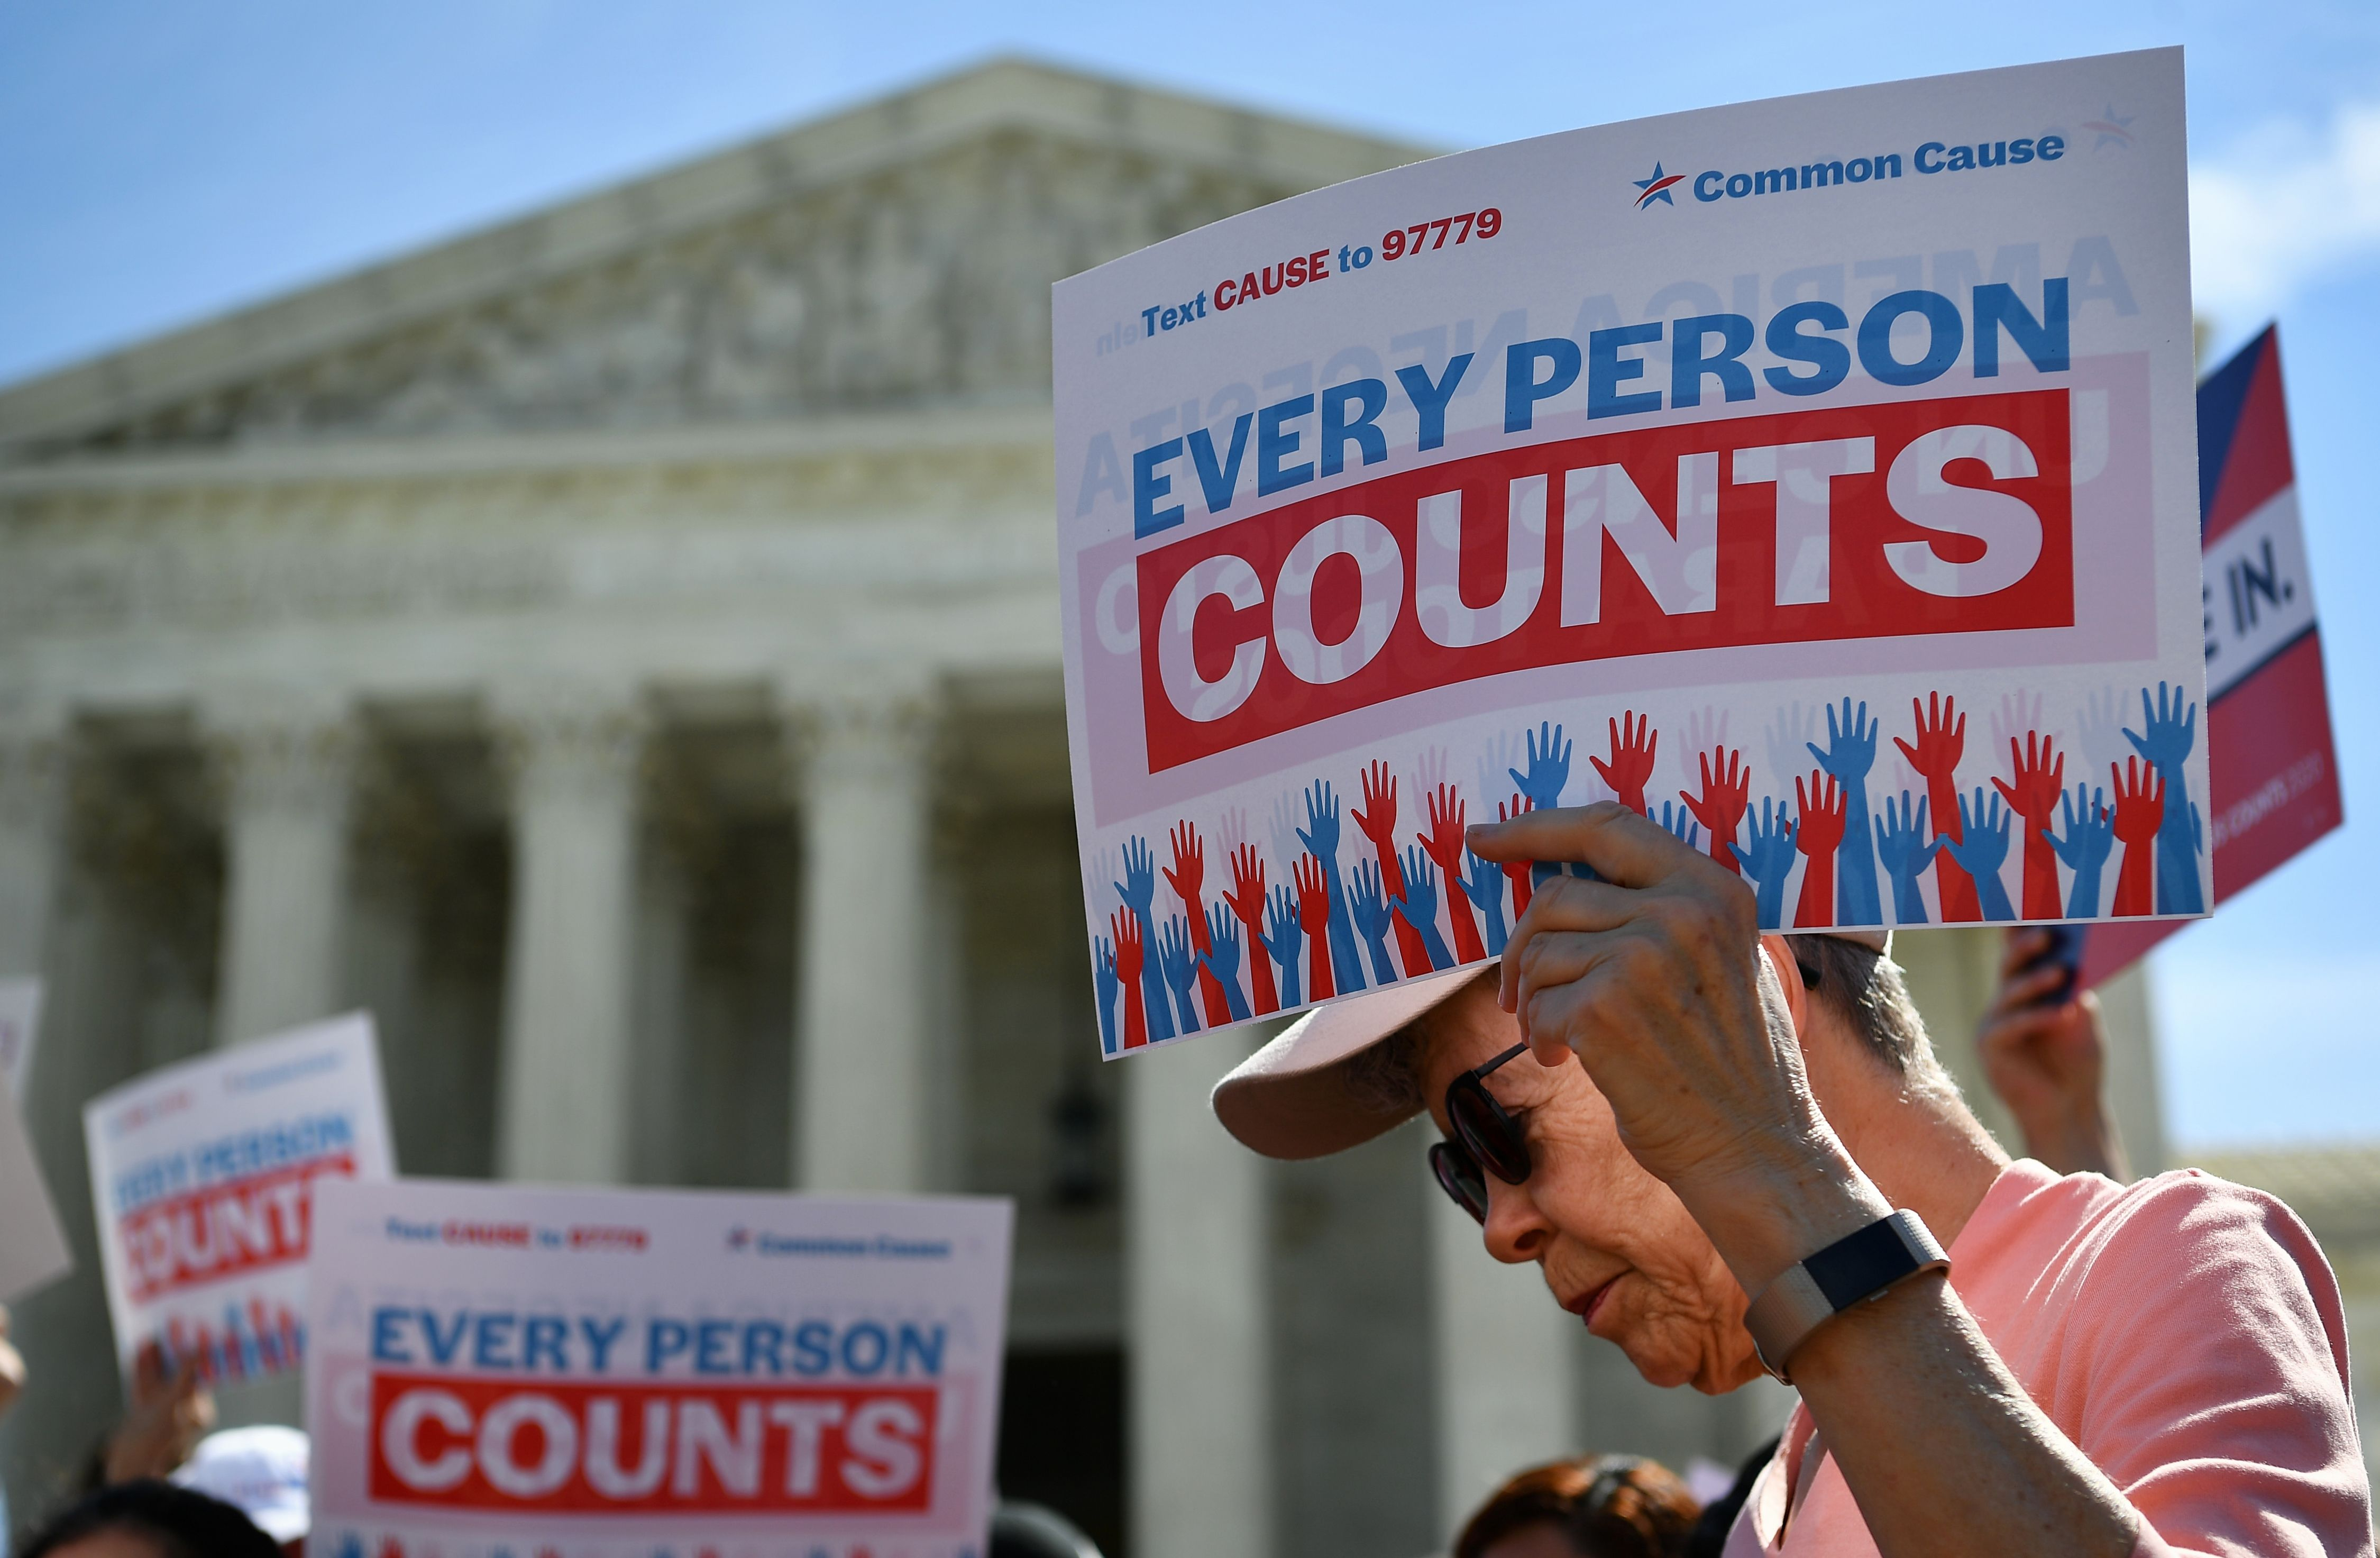 Demonstrators protest the proposed addition of a citizenship question on the 2020 Census at the Supreme Court on April 23, 2019. (Mandel Ngan/AFP/Getty Images)